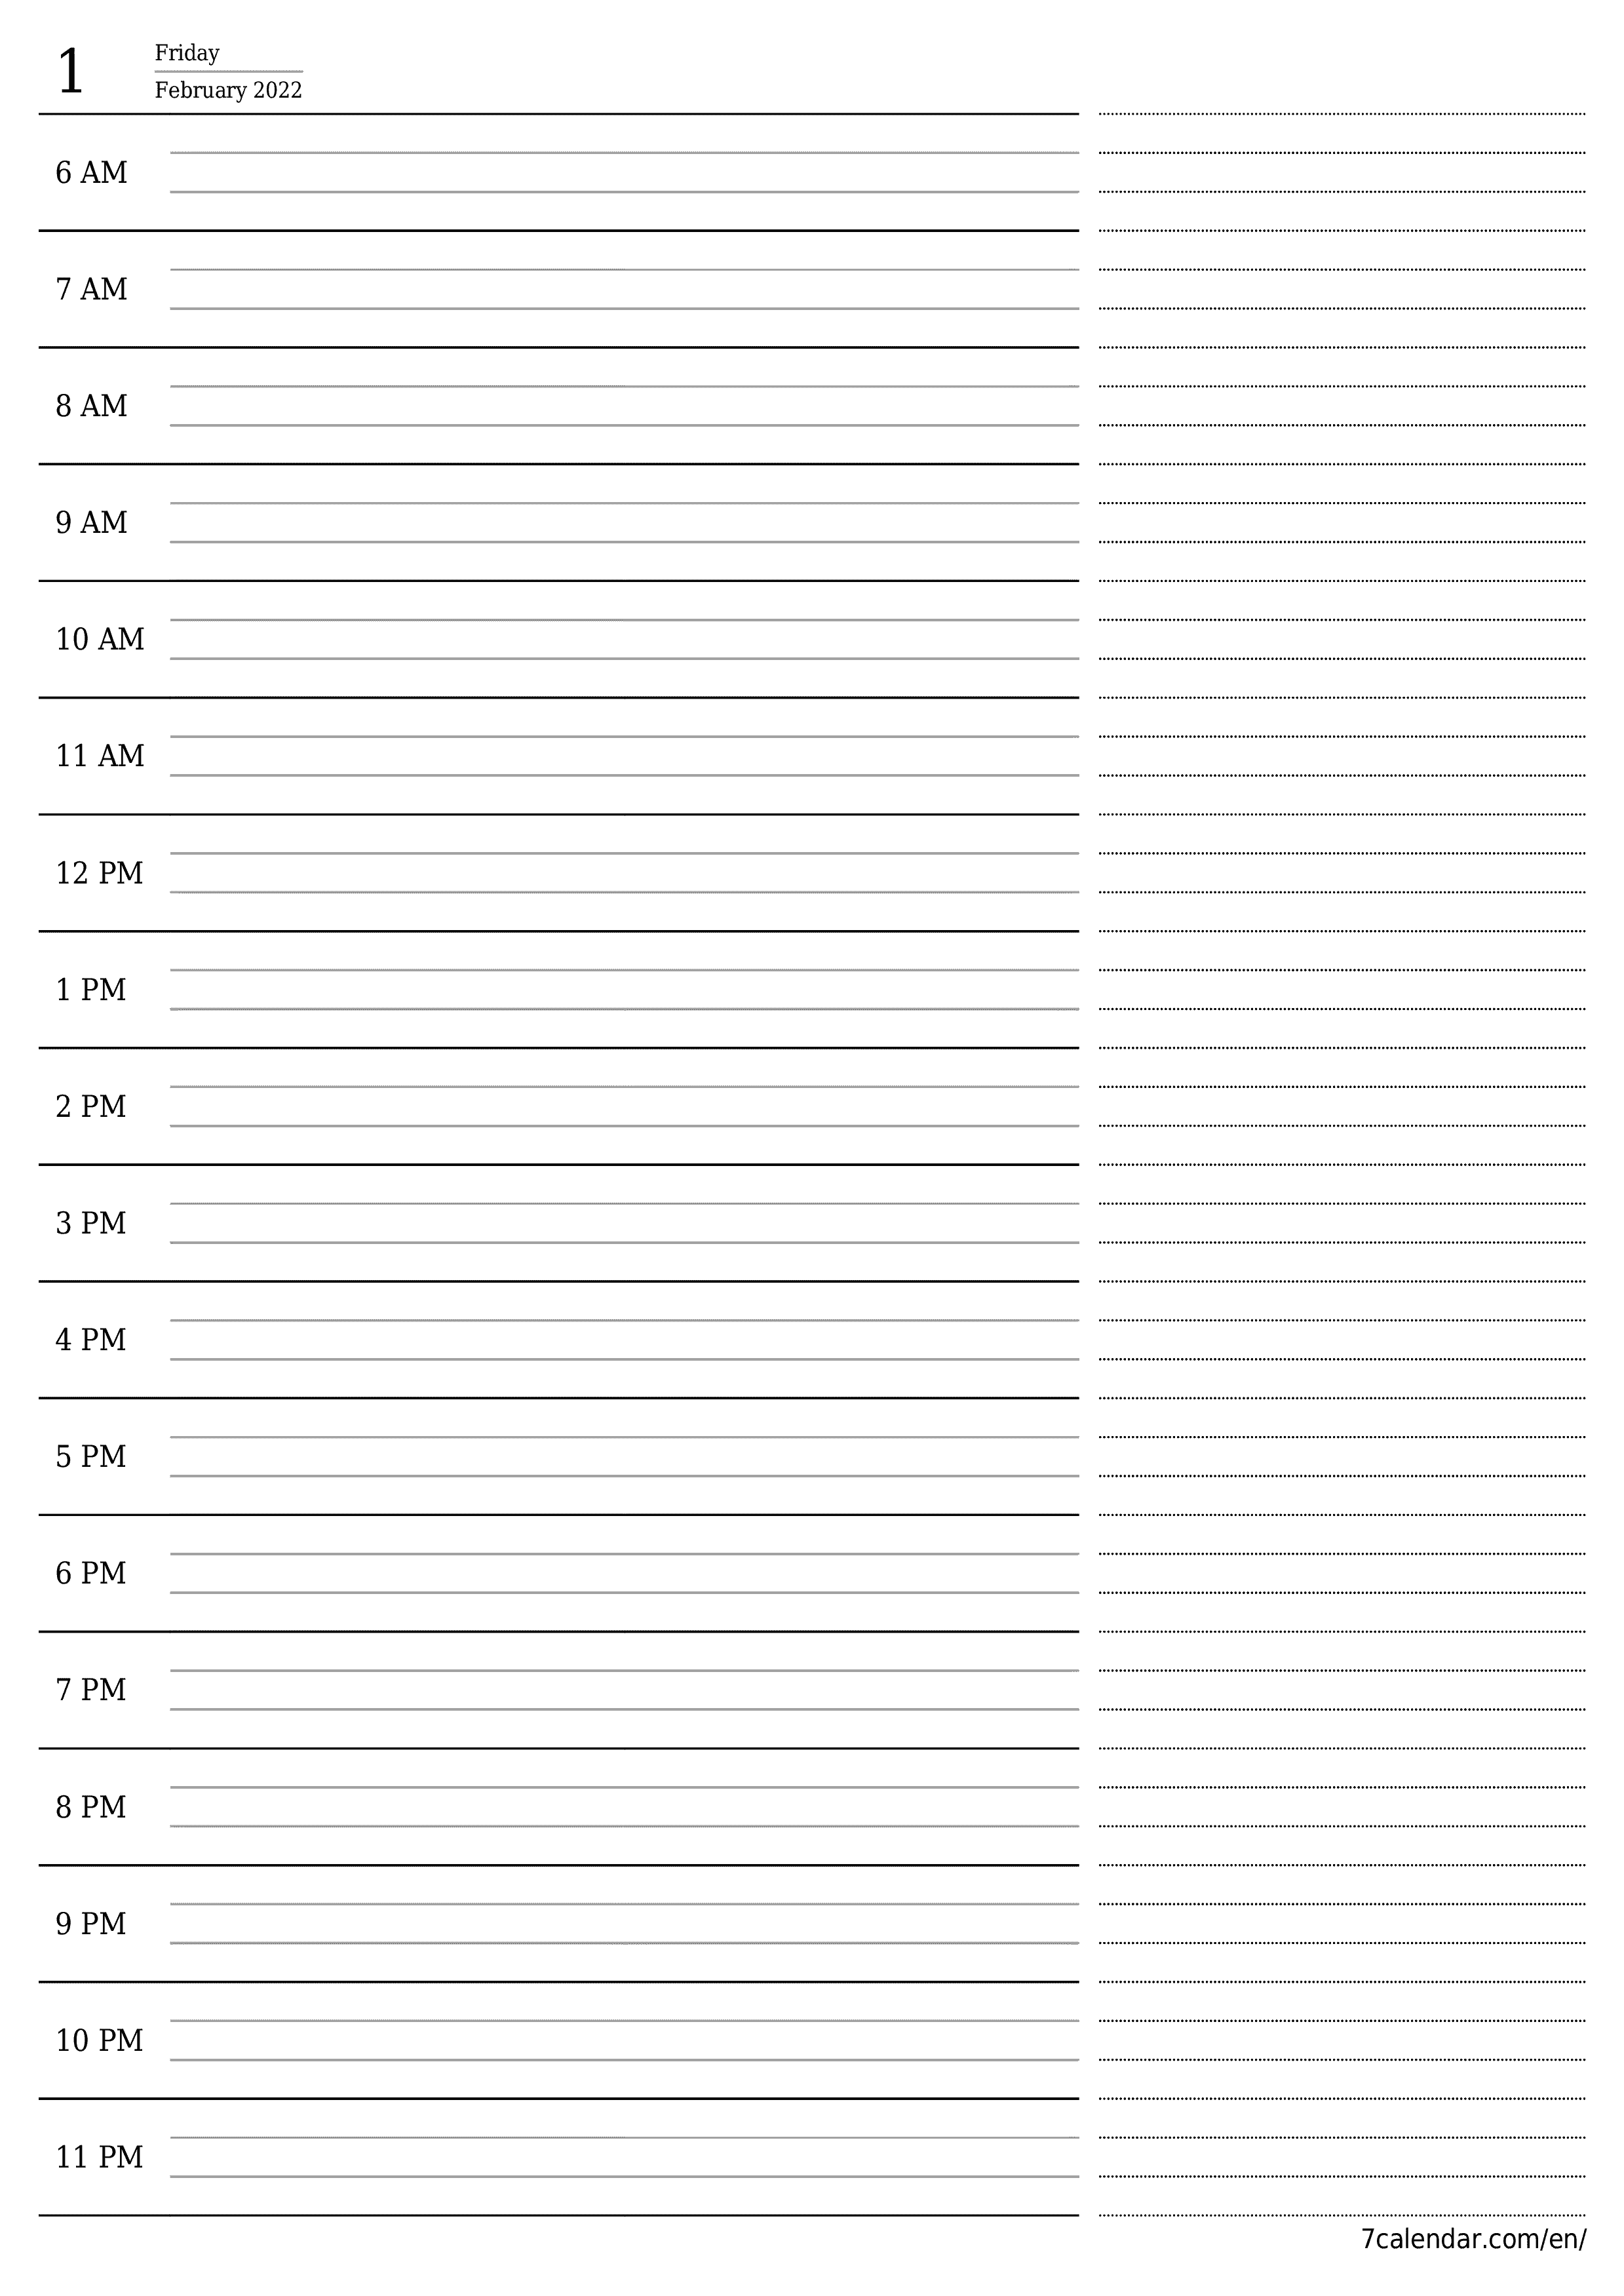 Blank daily calendar planner for day February 2022 with notes, save and print to PDF  - 7calendar.com